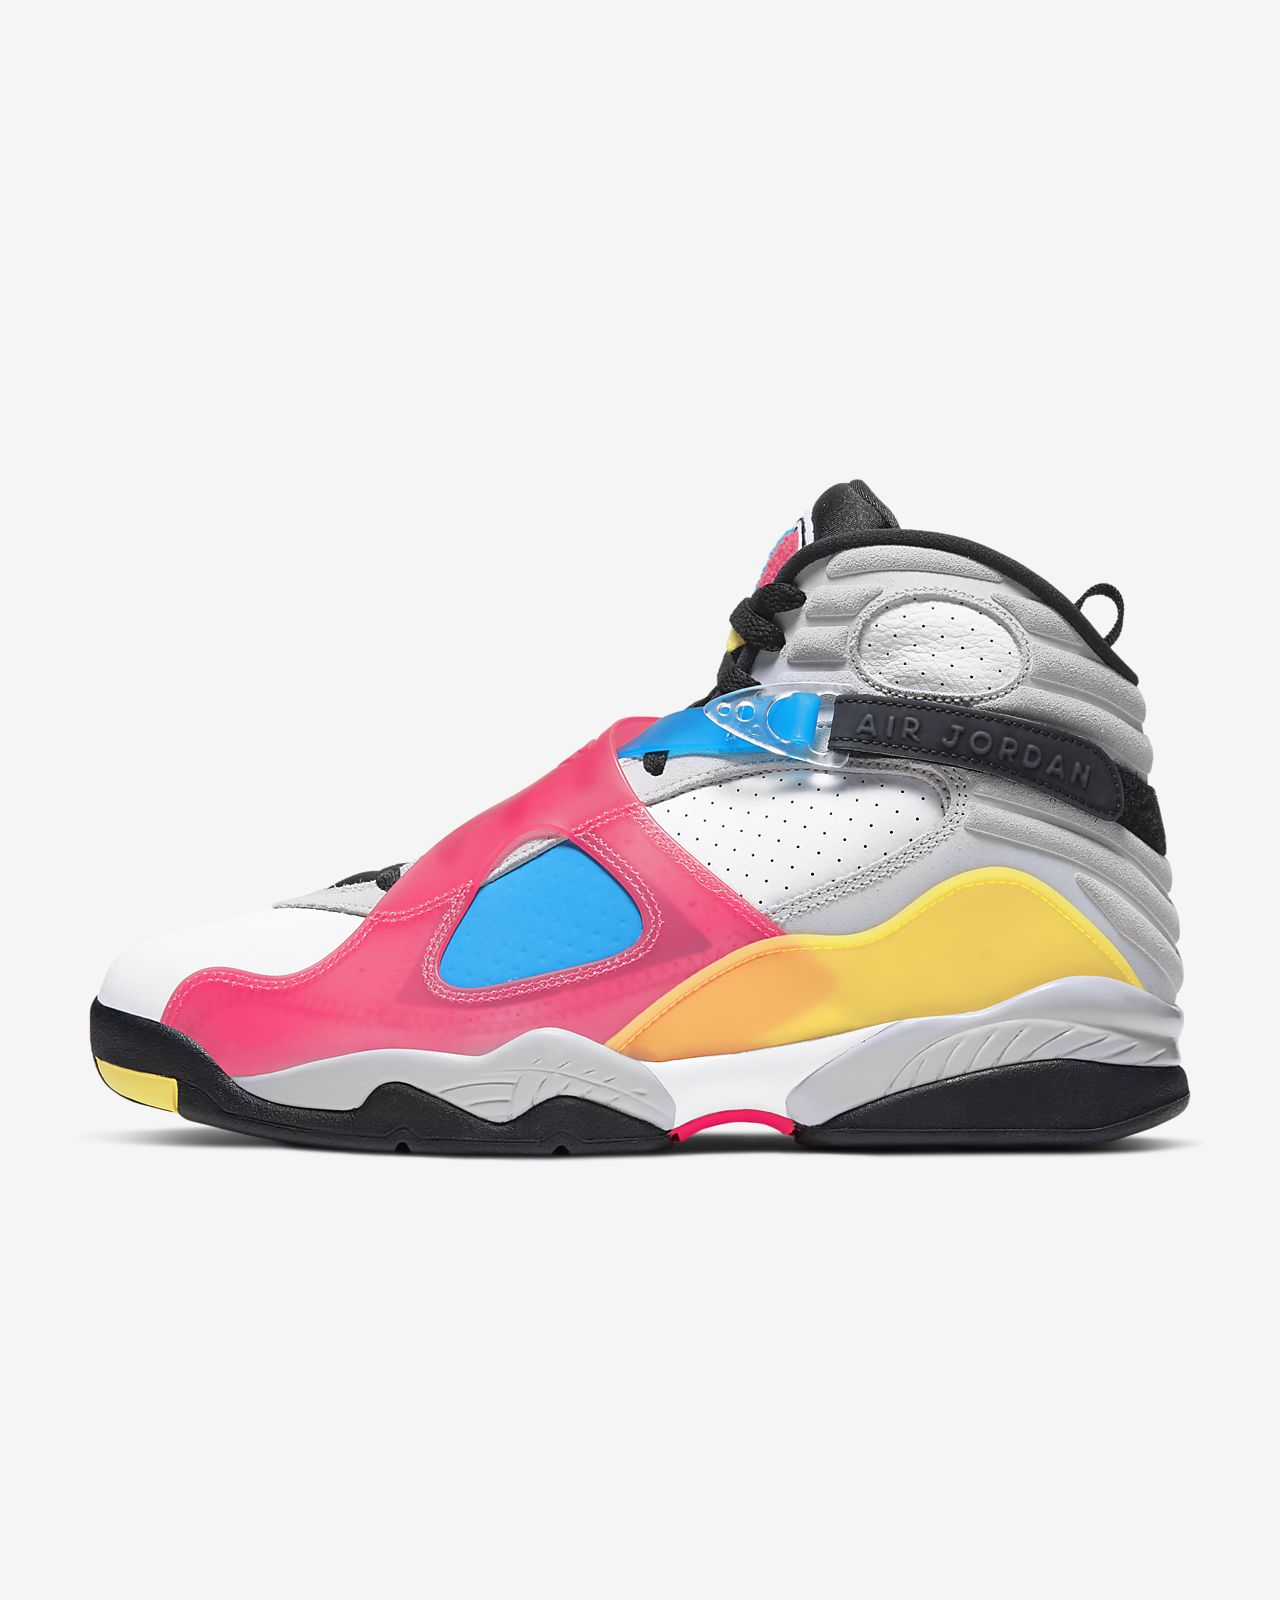 nike jordan homme nike homme chaussures chaussures air OuPwkXZliT